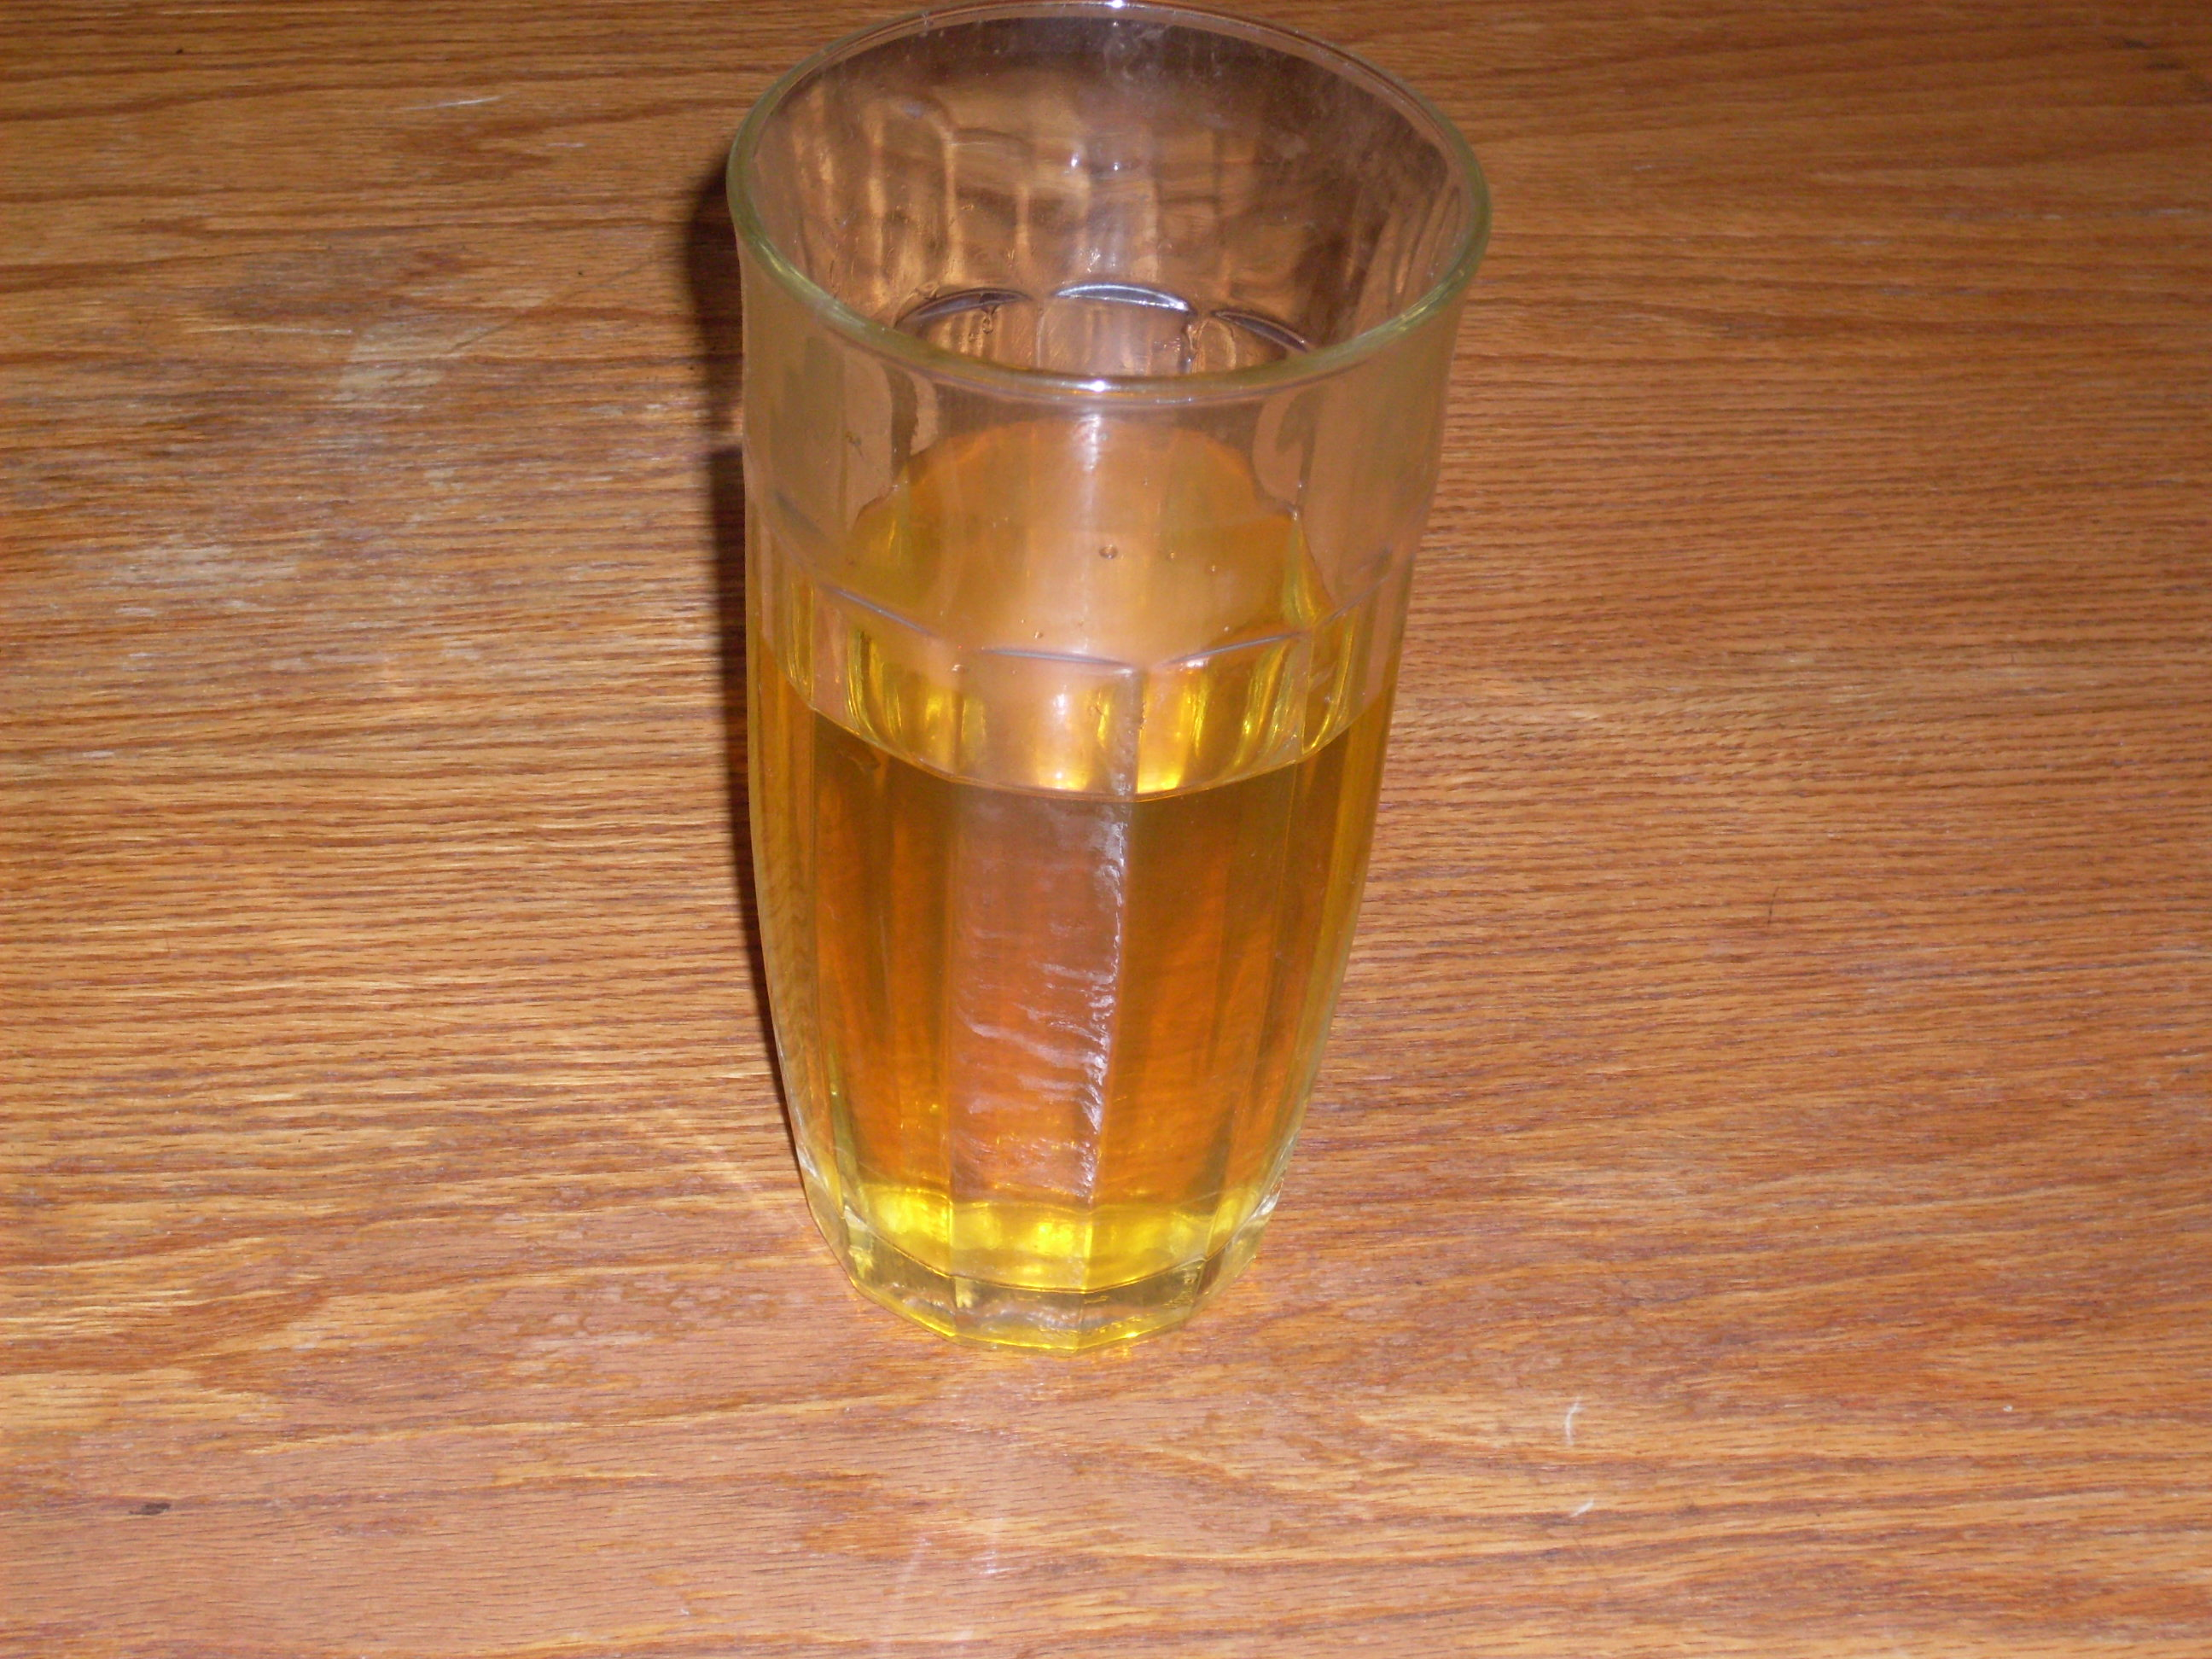 urine in glass